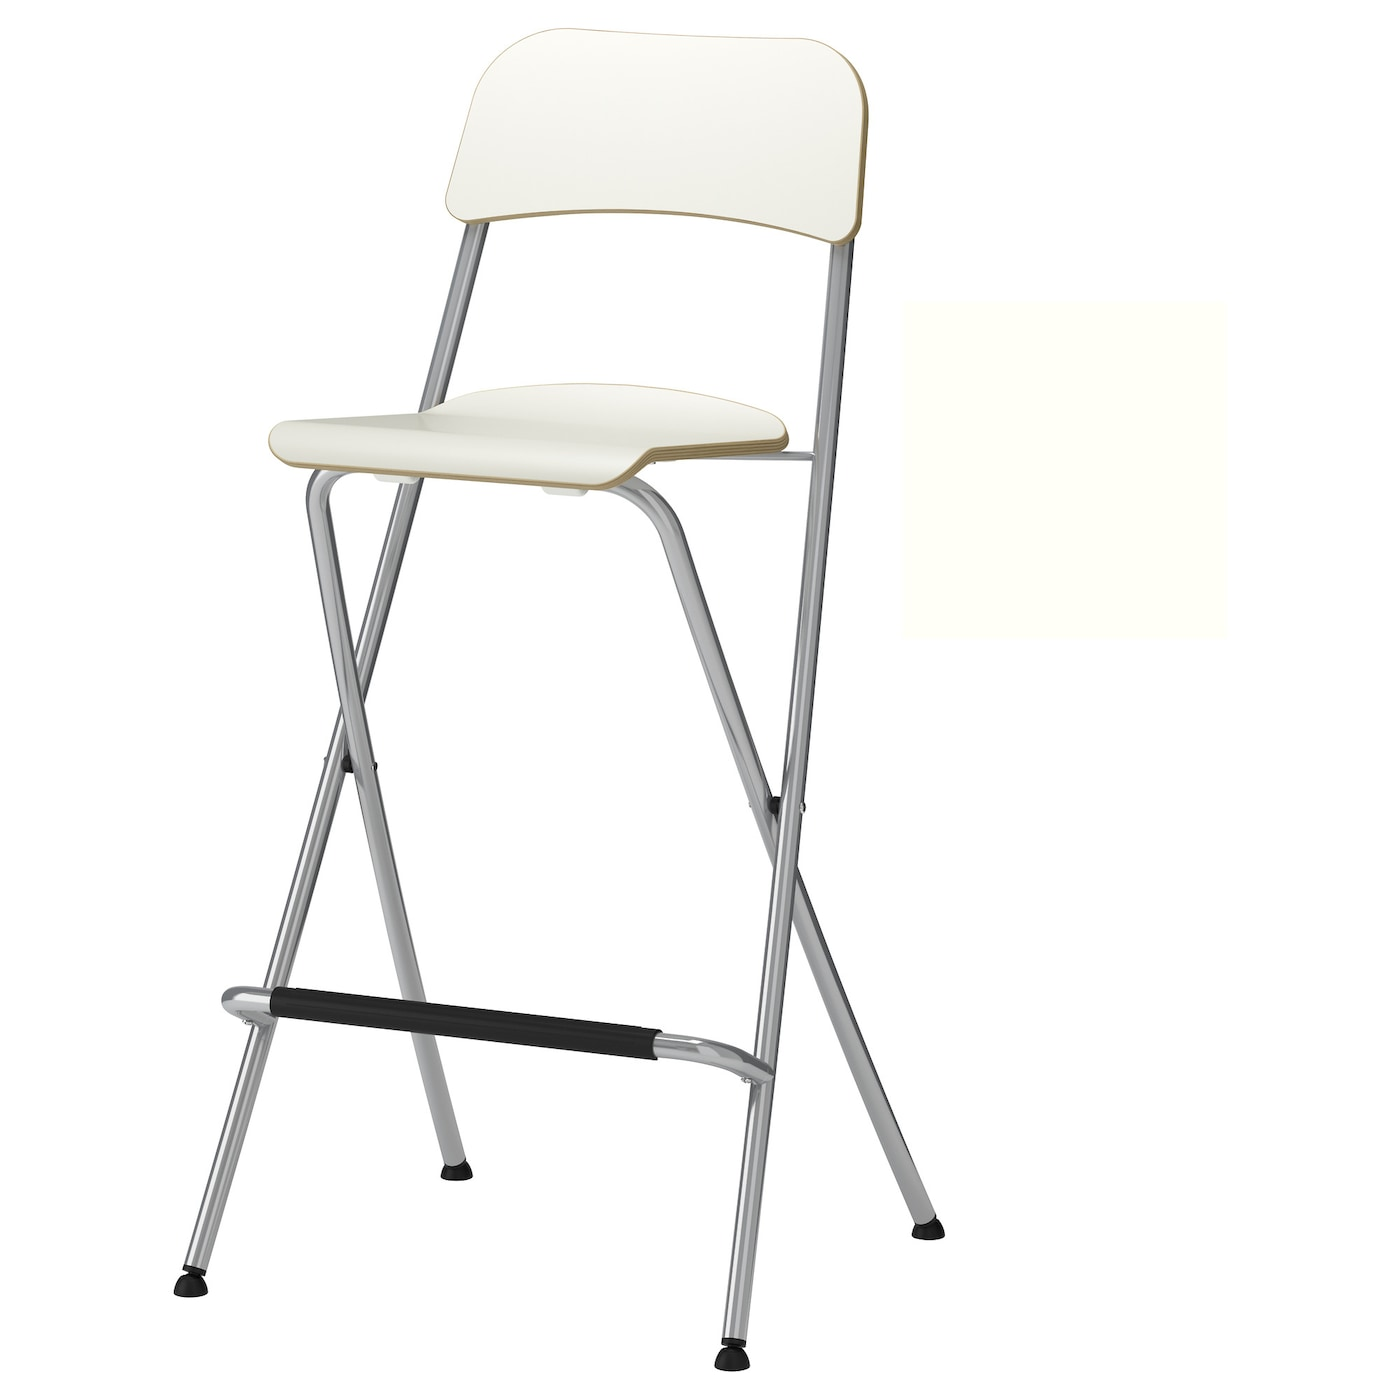 FRANKLIN Bar stool with backrest foldable White silver colour 74